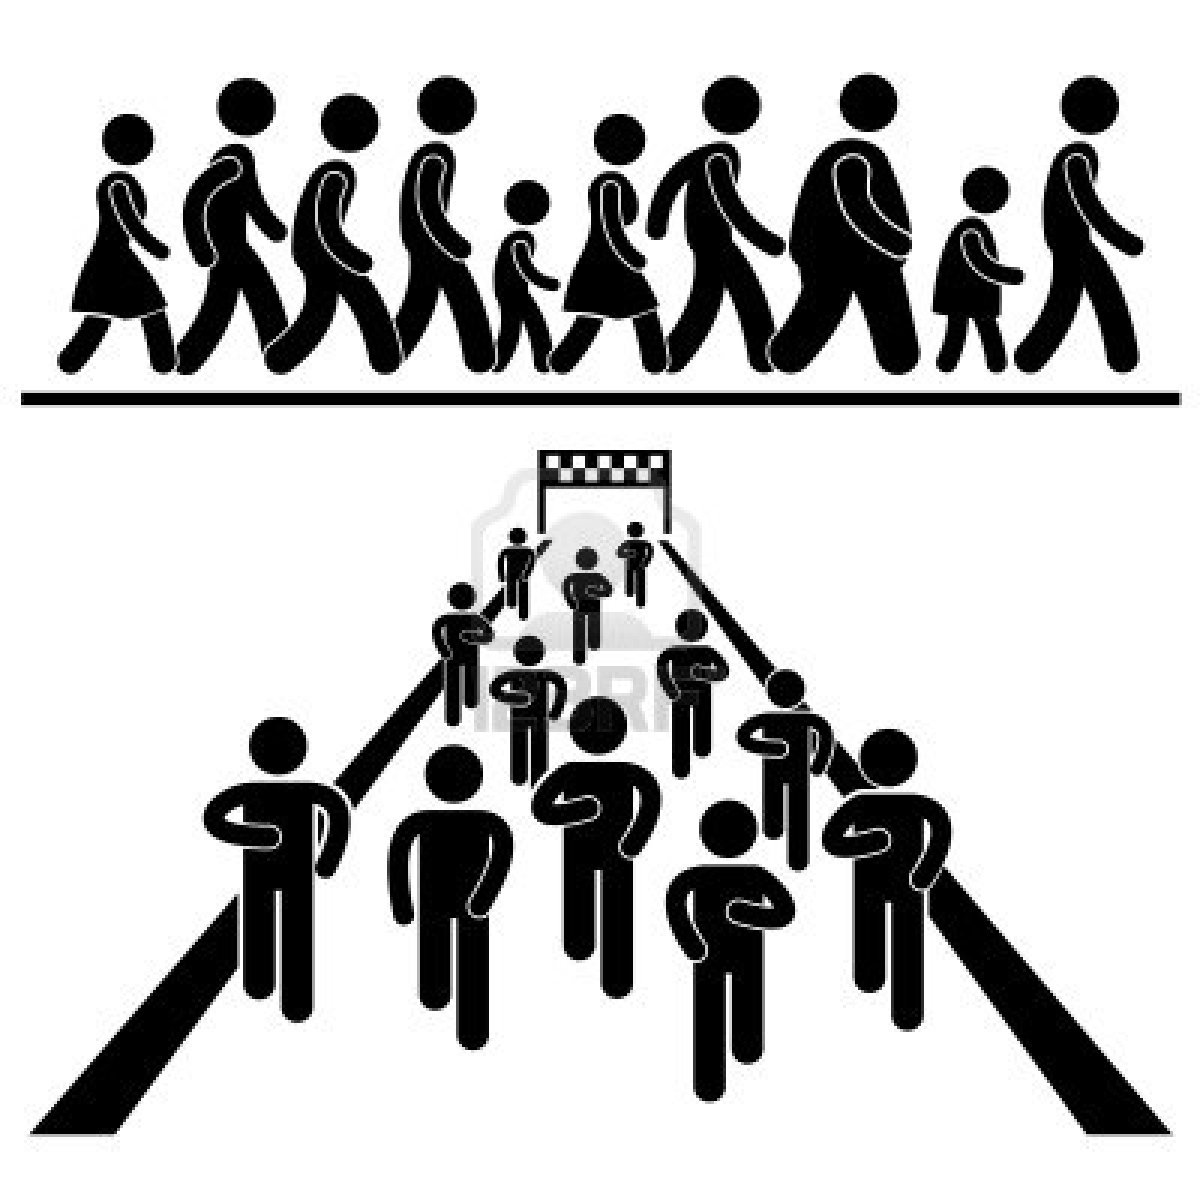 Crowd clipart pictogram Pinterest Pictogram Pin Pictogram more